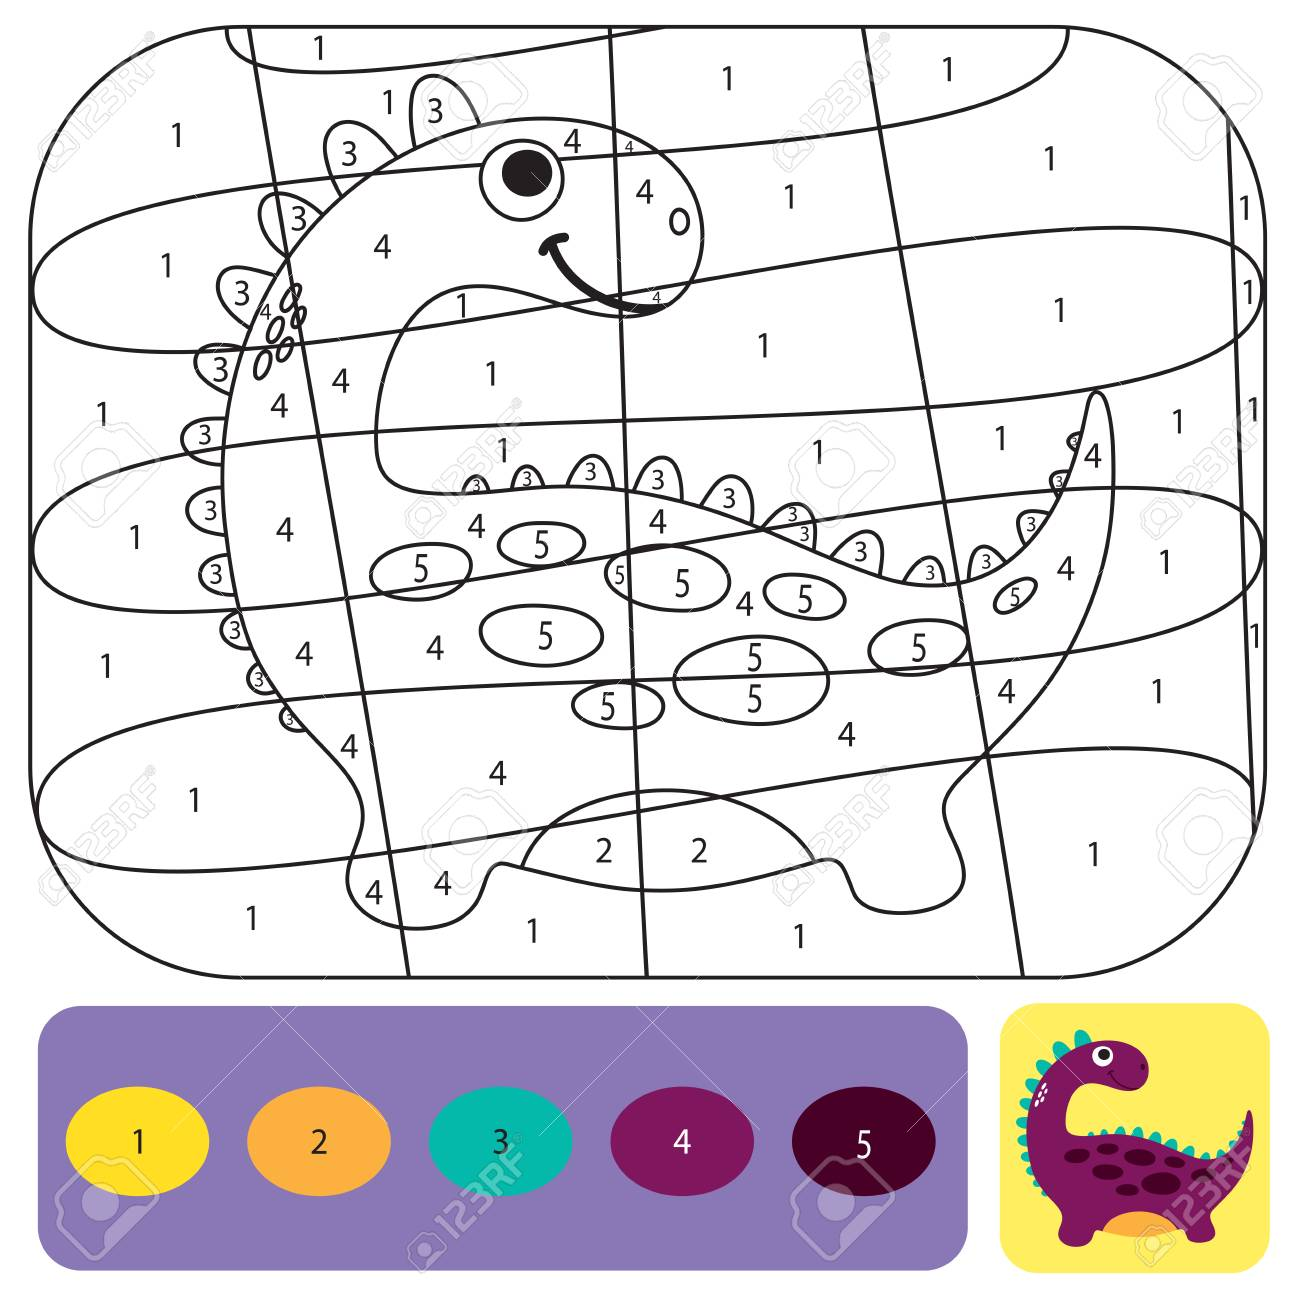 Cute dino coloring page for kids. Printable design coloring book...